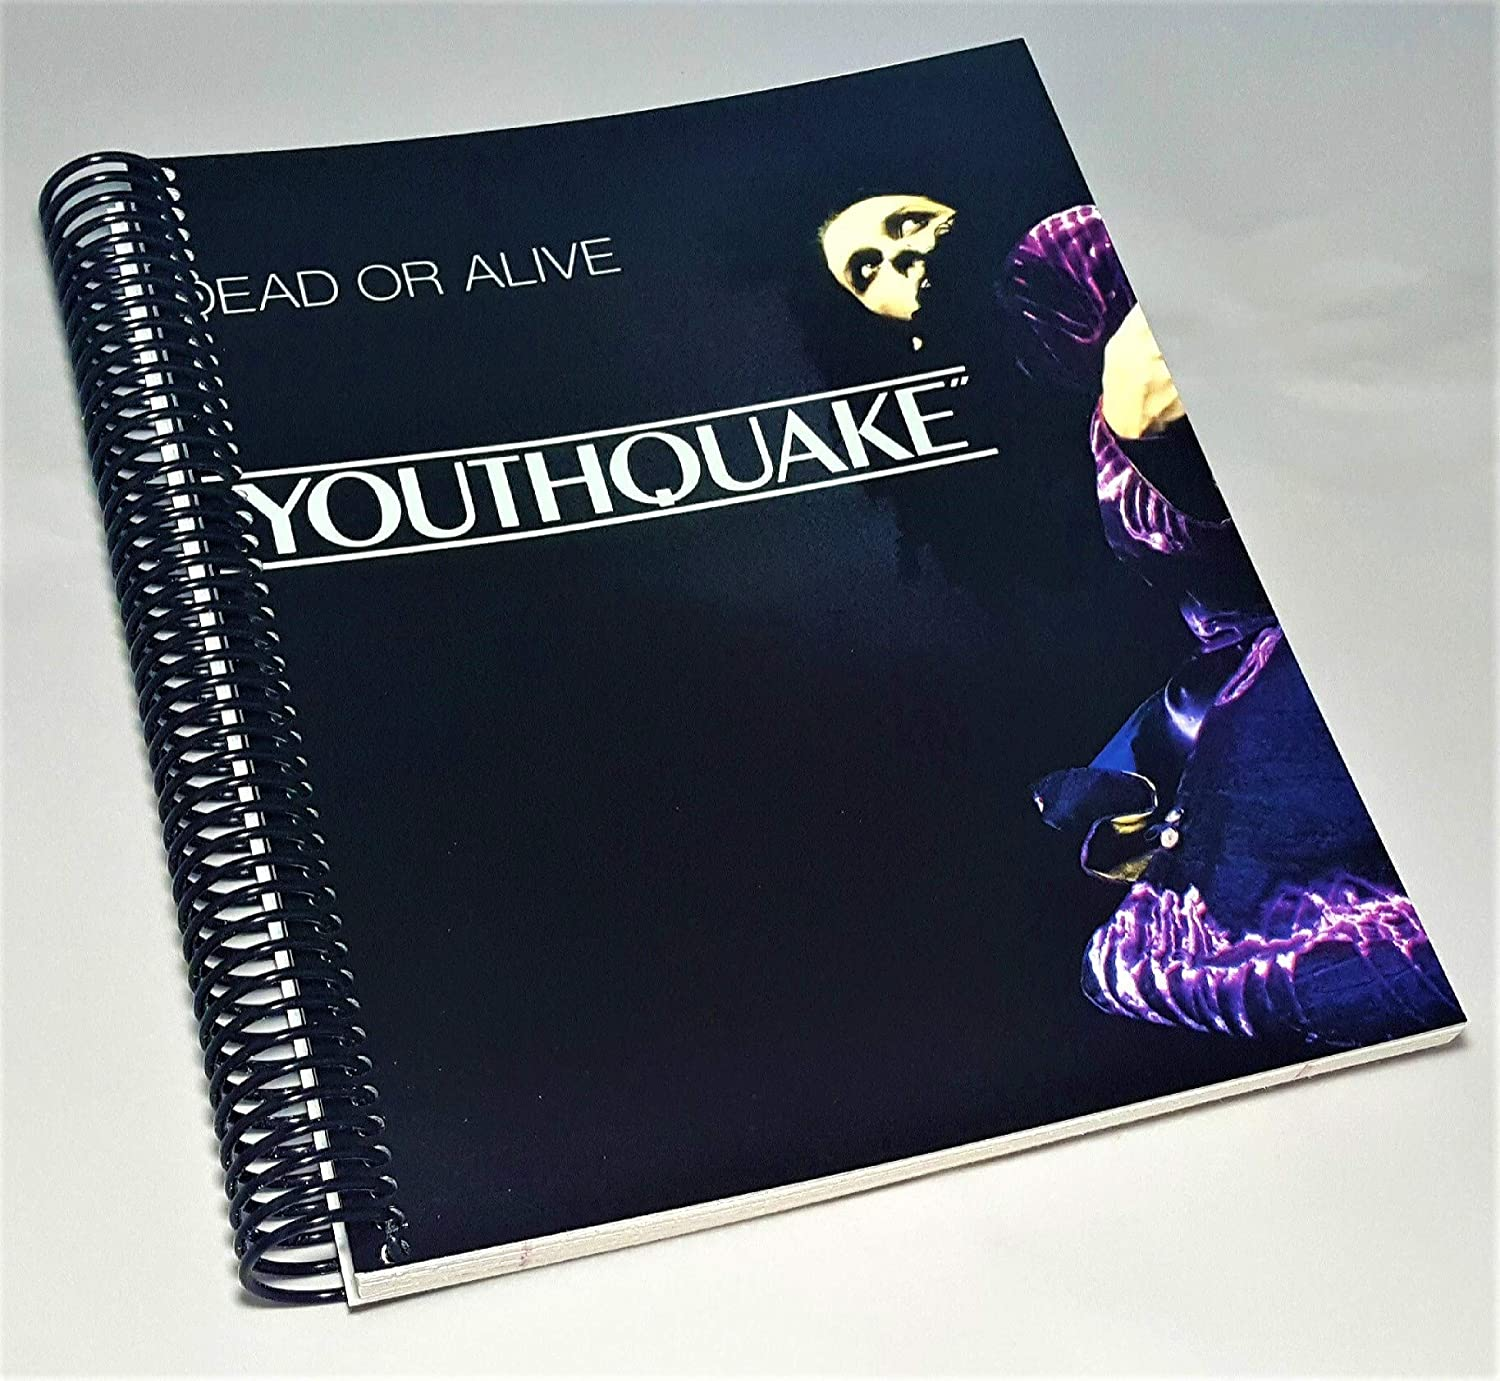 Amazon Com Dead Or Alive Dead Or Alive Youthquake Youthquake Vinyl Pete Burns Book Album Cover Notebook Gay Husband Christmas Gifts Limited Edition Vinyl Handmade